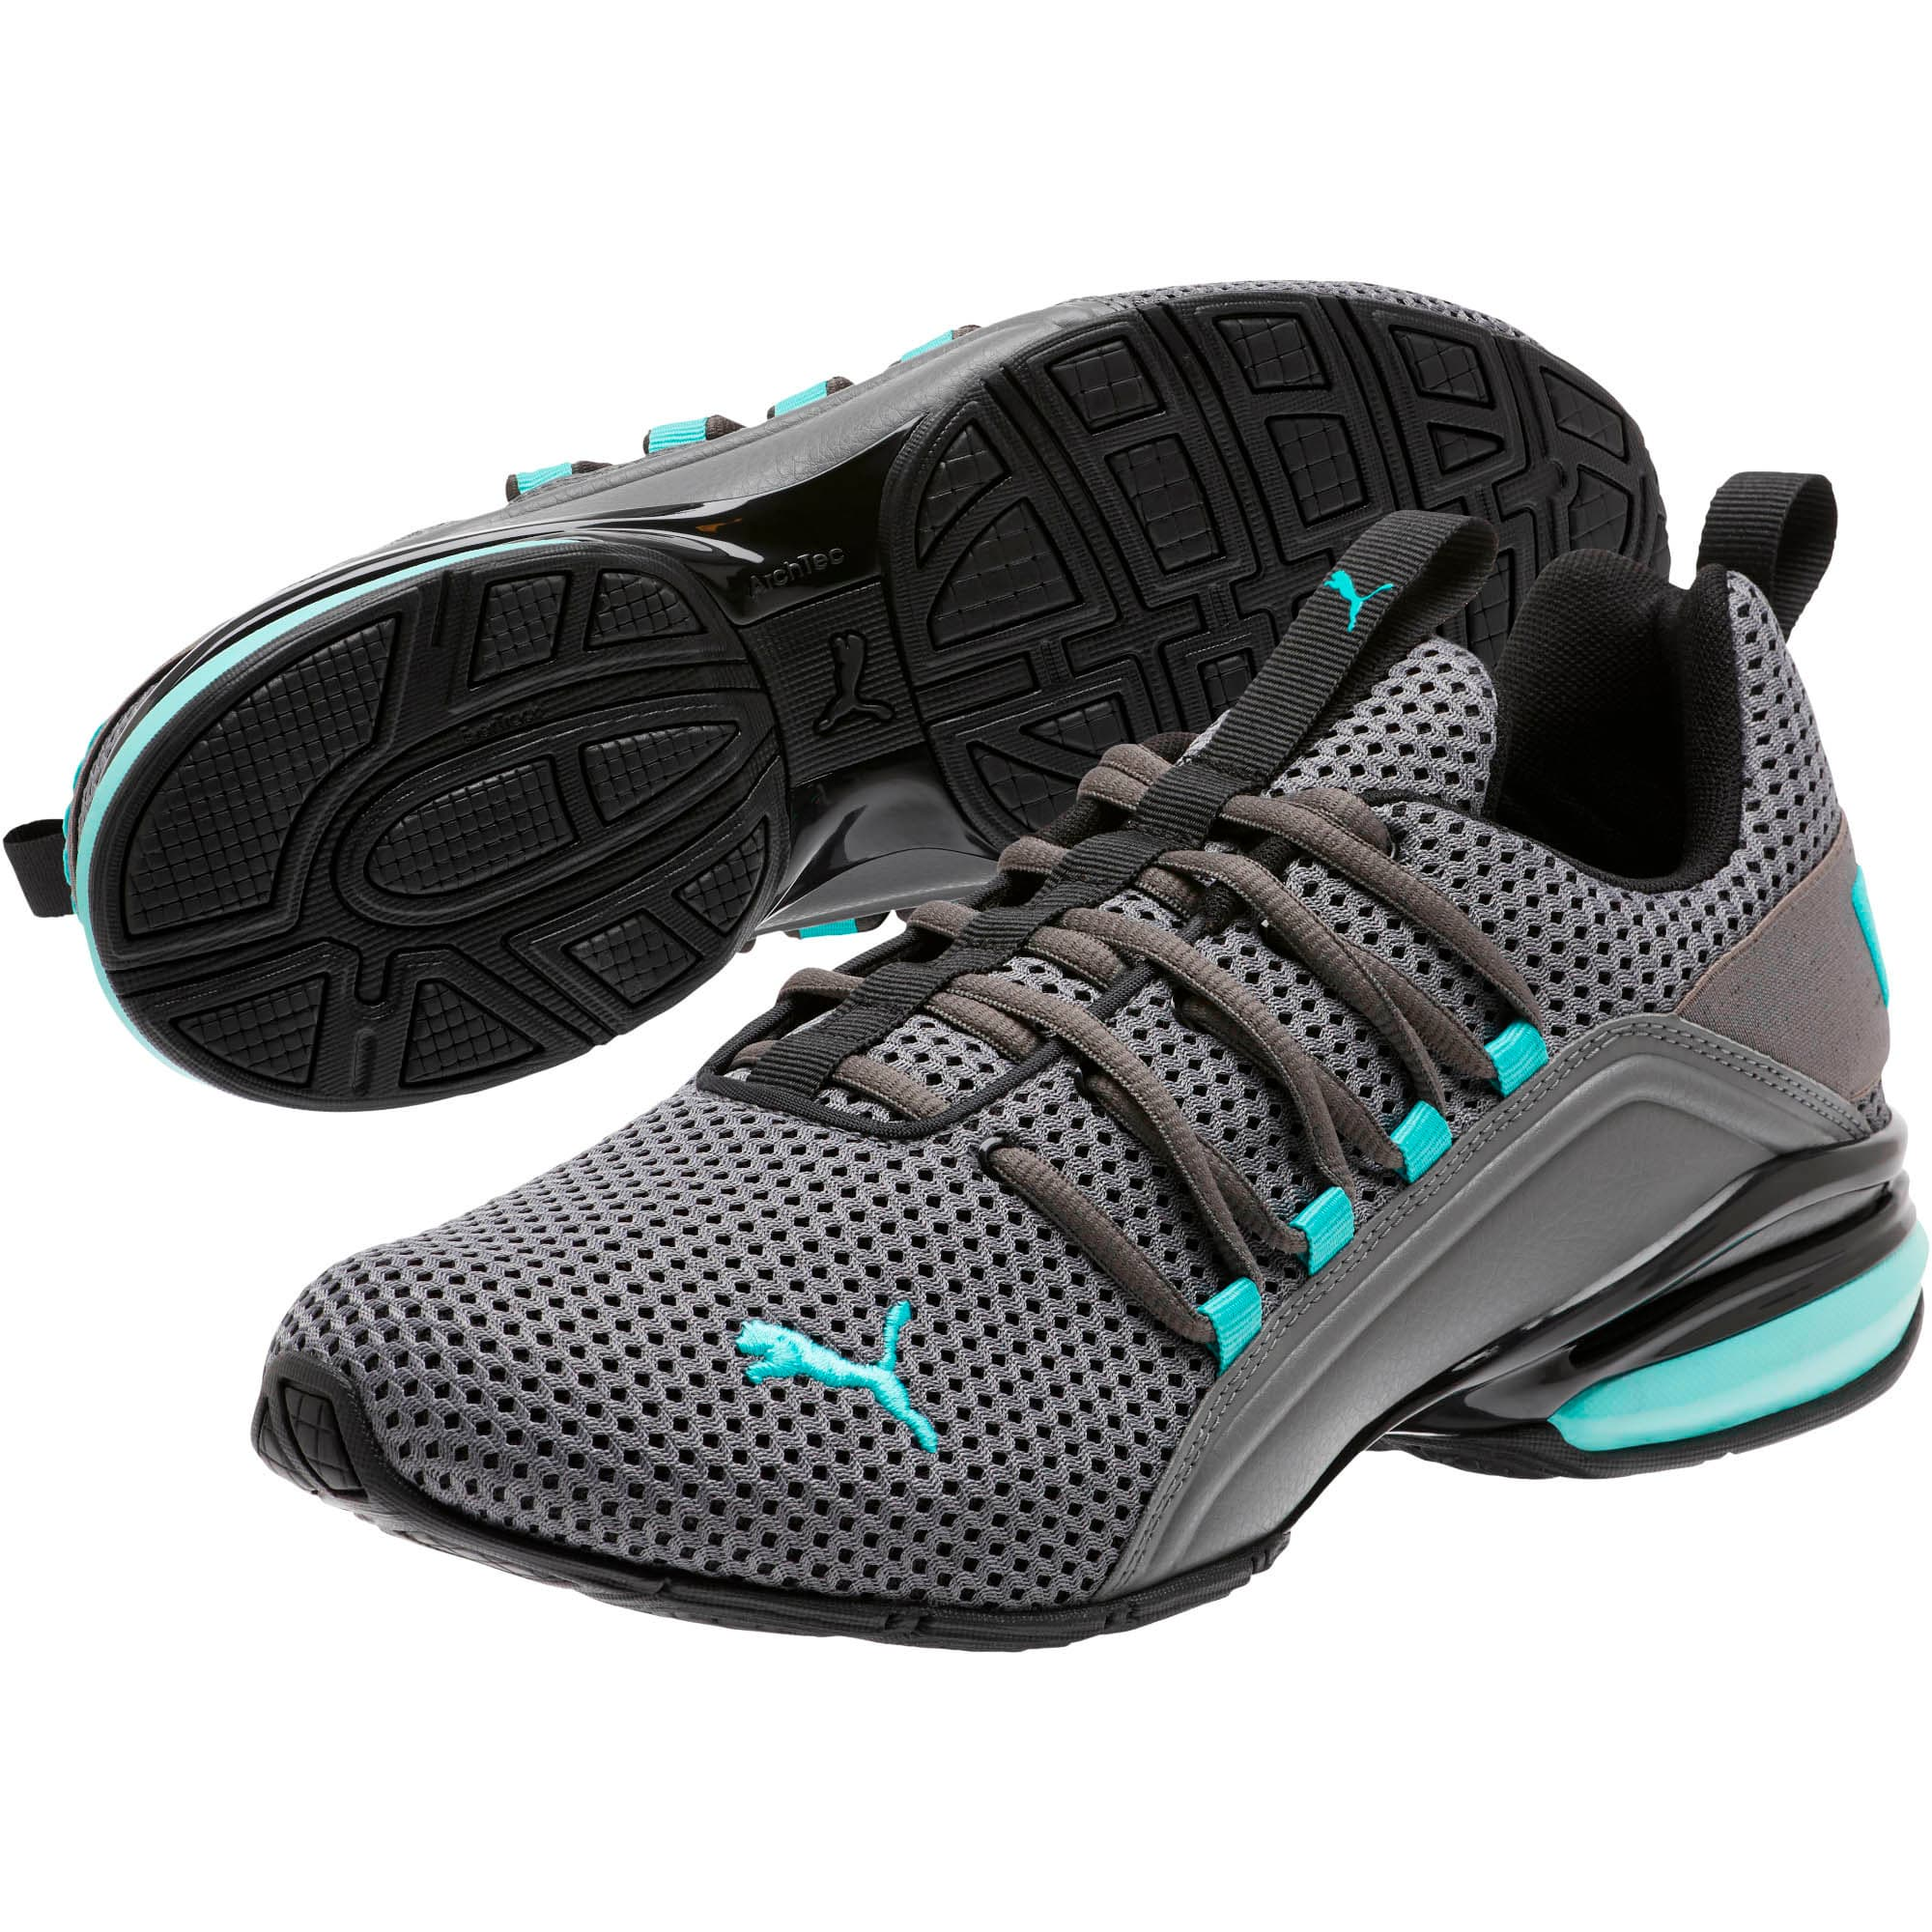 Thumbnail 2 of Axelion Breathe Men's Training Shoes, P Black-CASTLEROCK-Blue Turq, medium